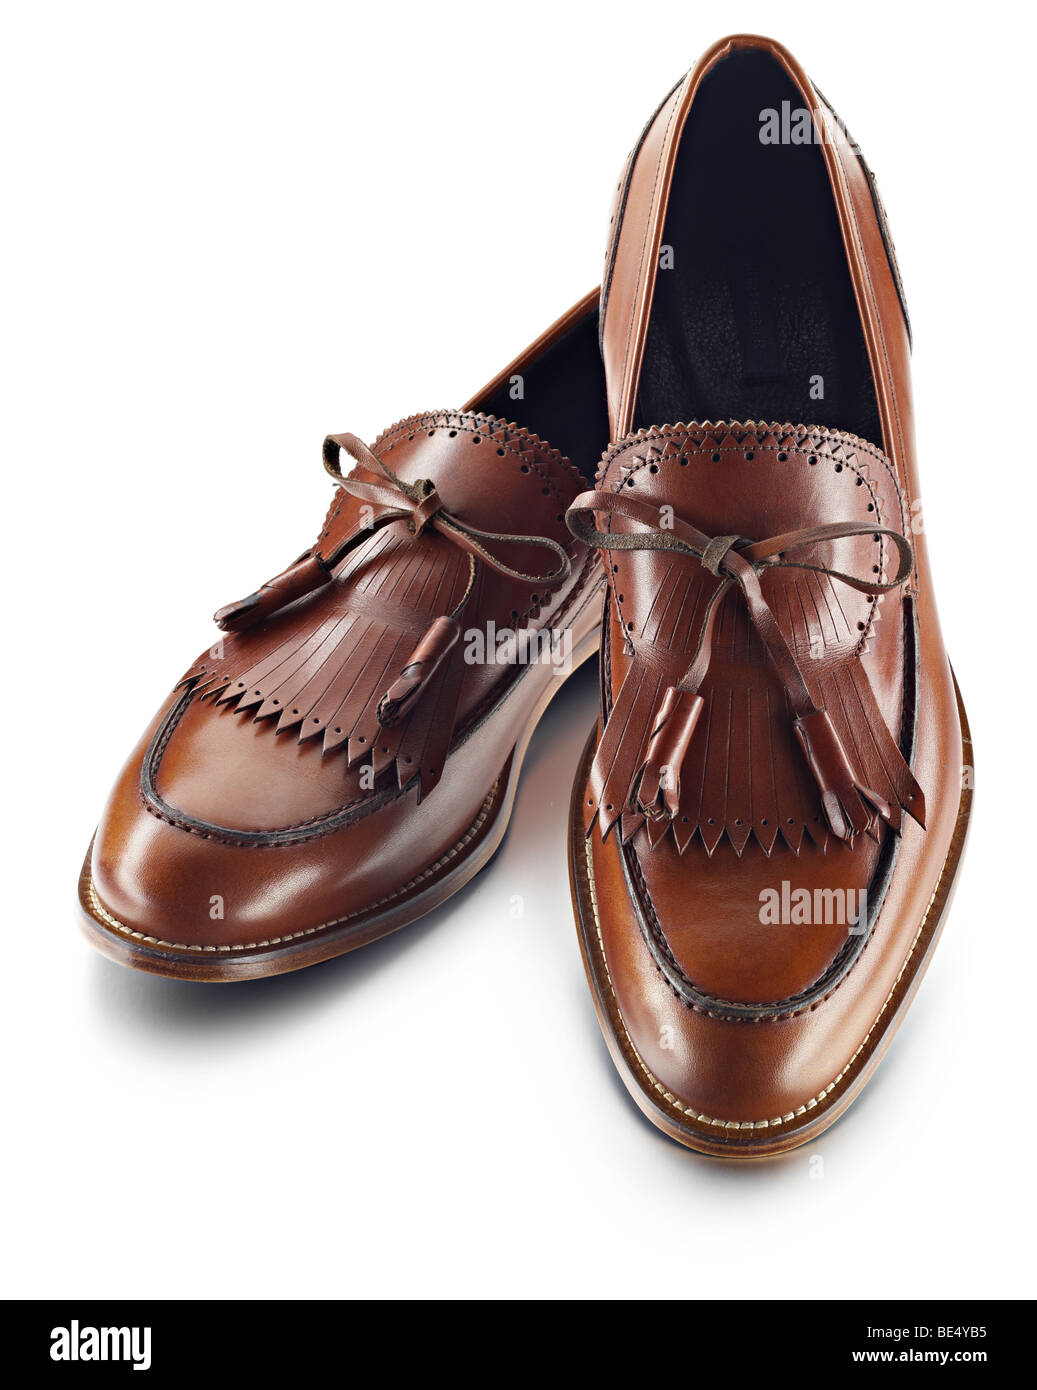 Alamy Mens Dress Shoes